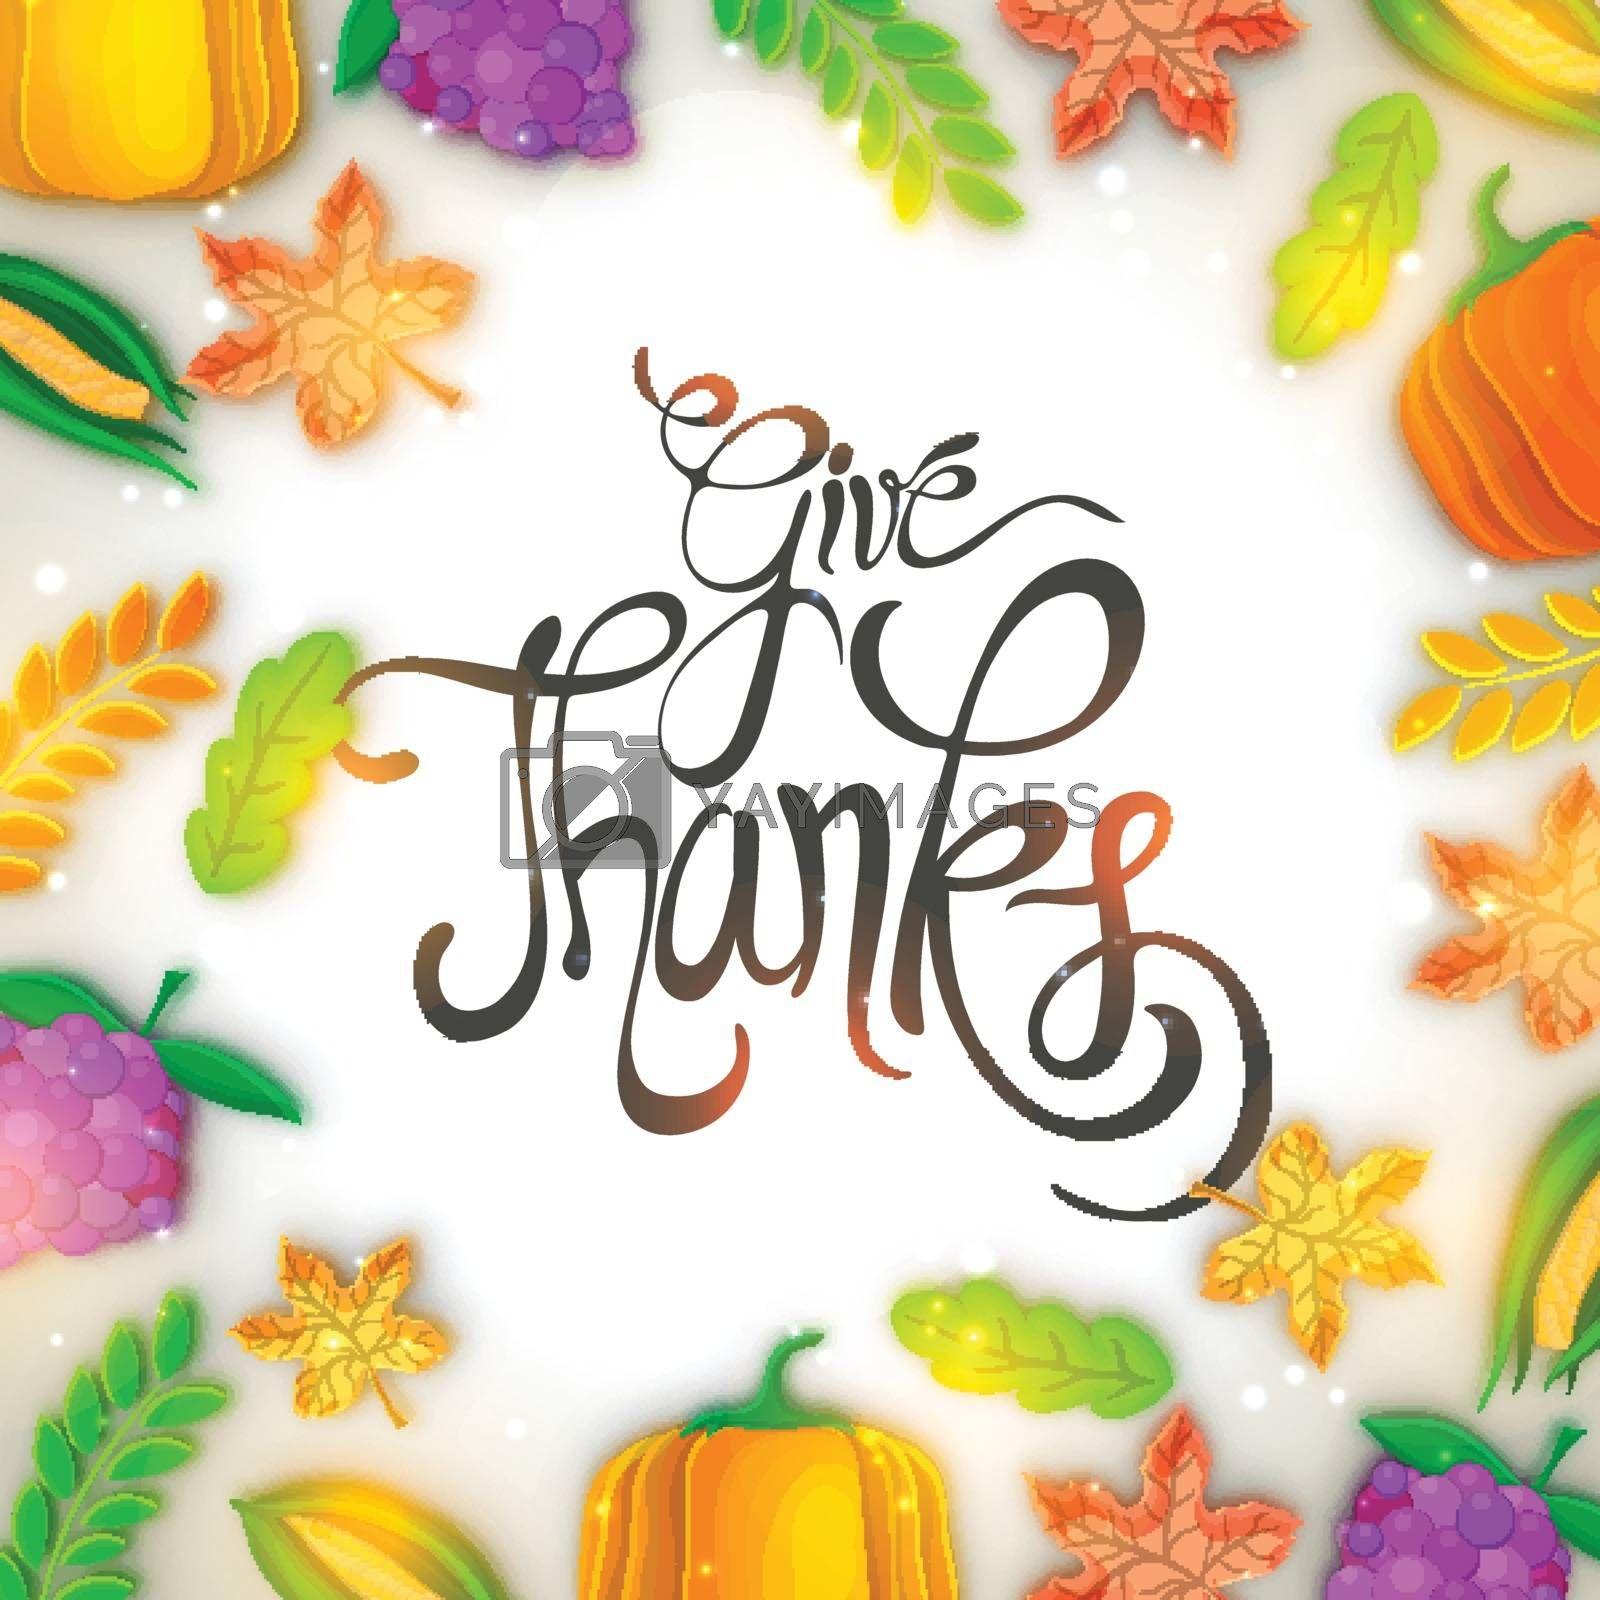 Creative colorful background with stylish text Give Thanks, fruits, vegetables and maple leaves for Happy Thanksgiving Day celebration.